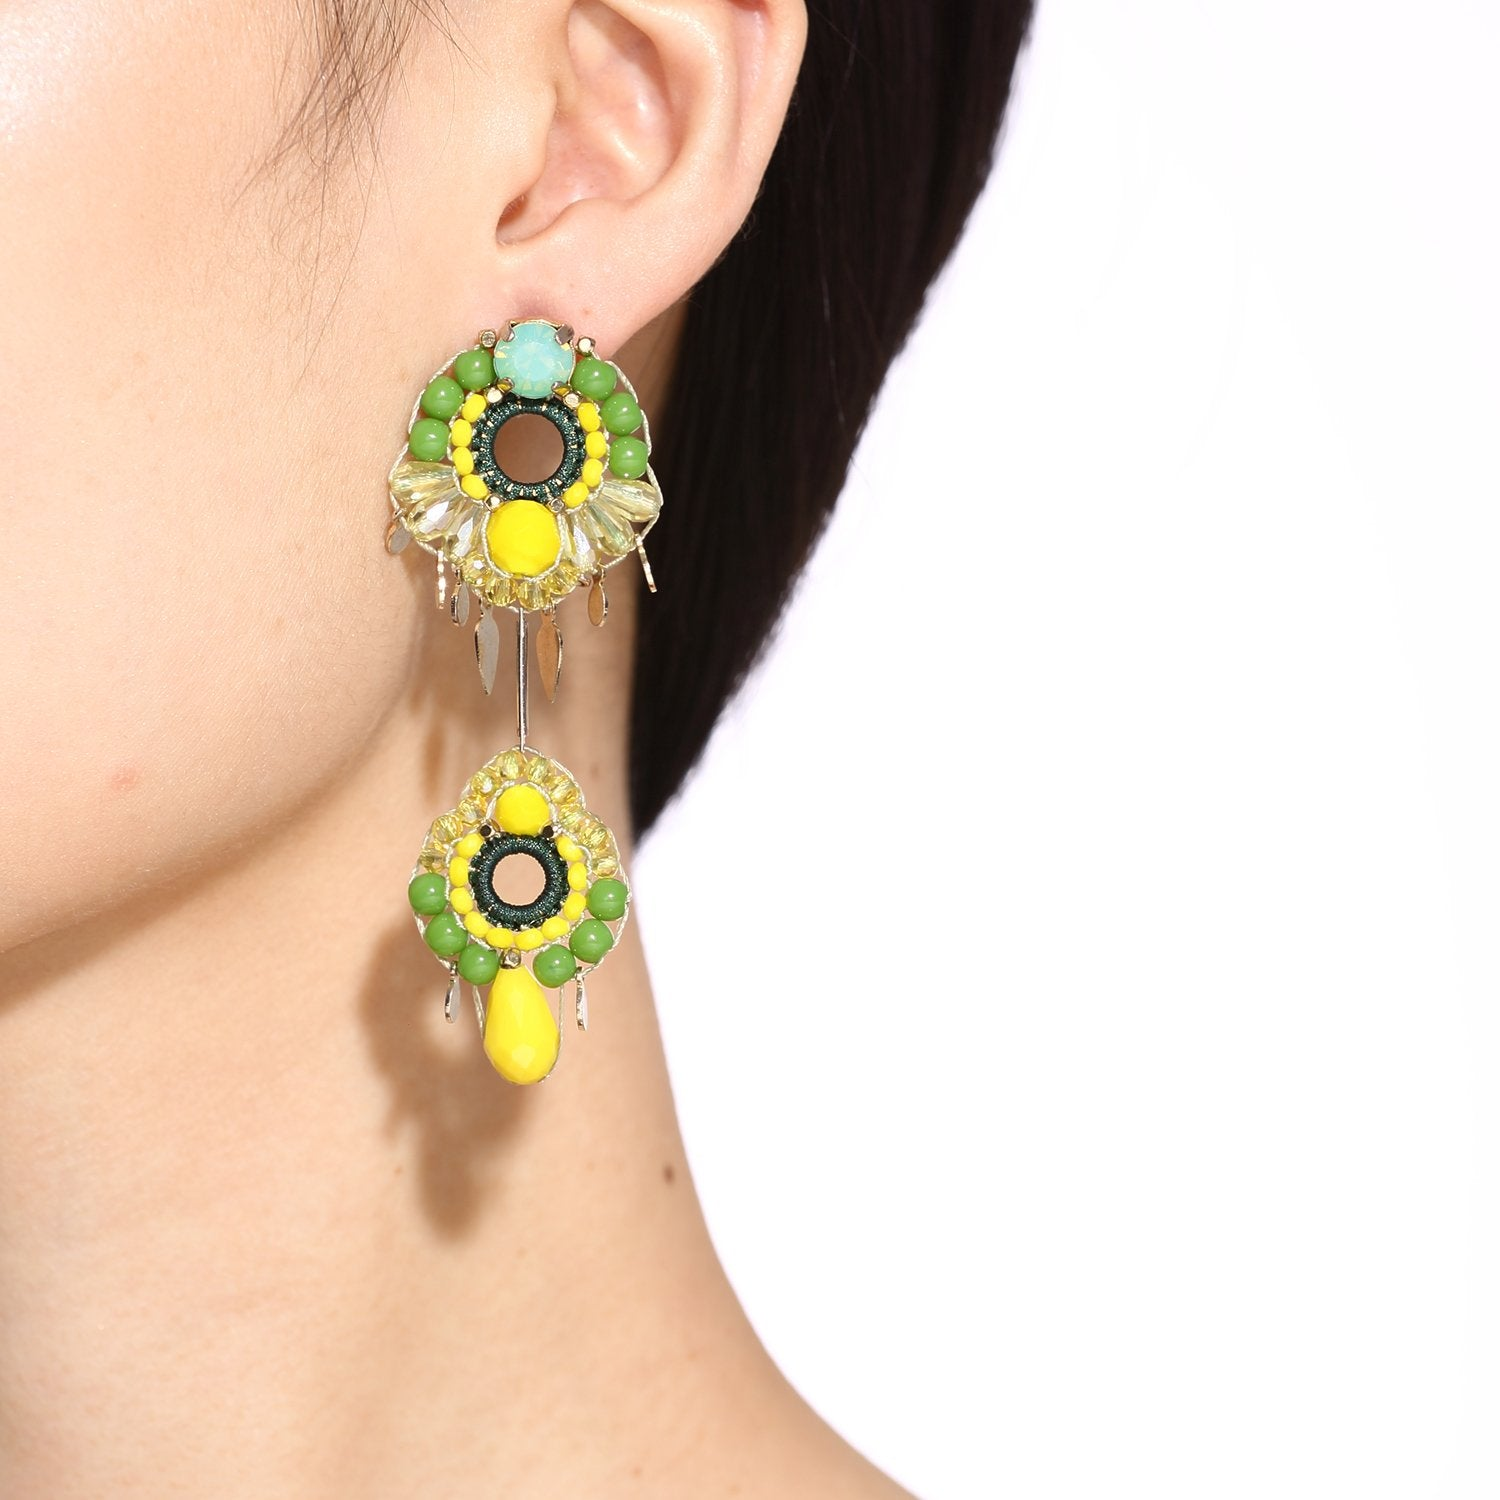 Statement Earrings With Black Dress